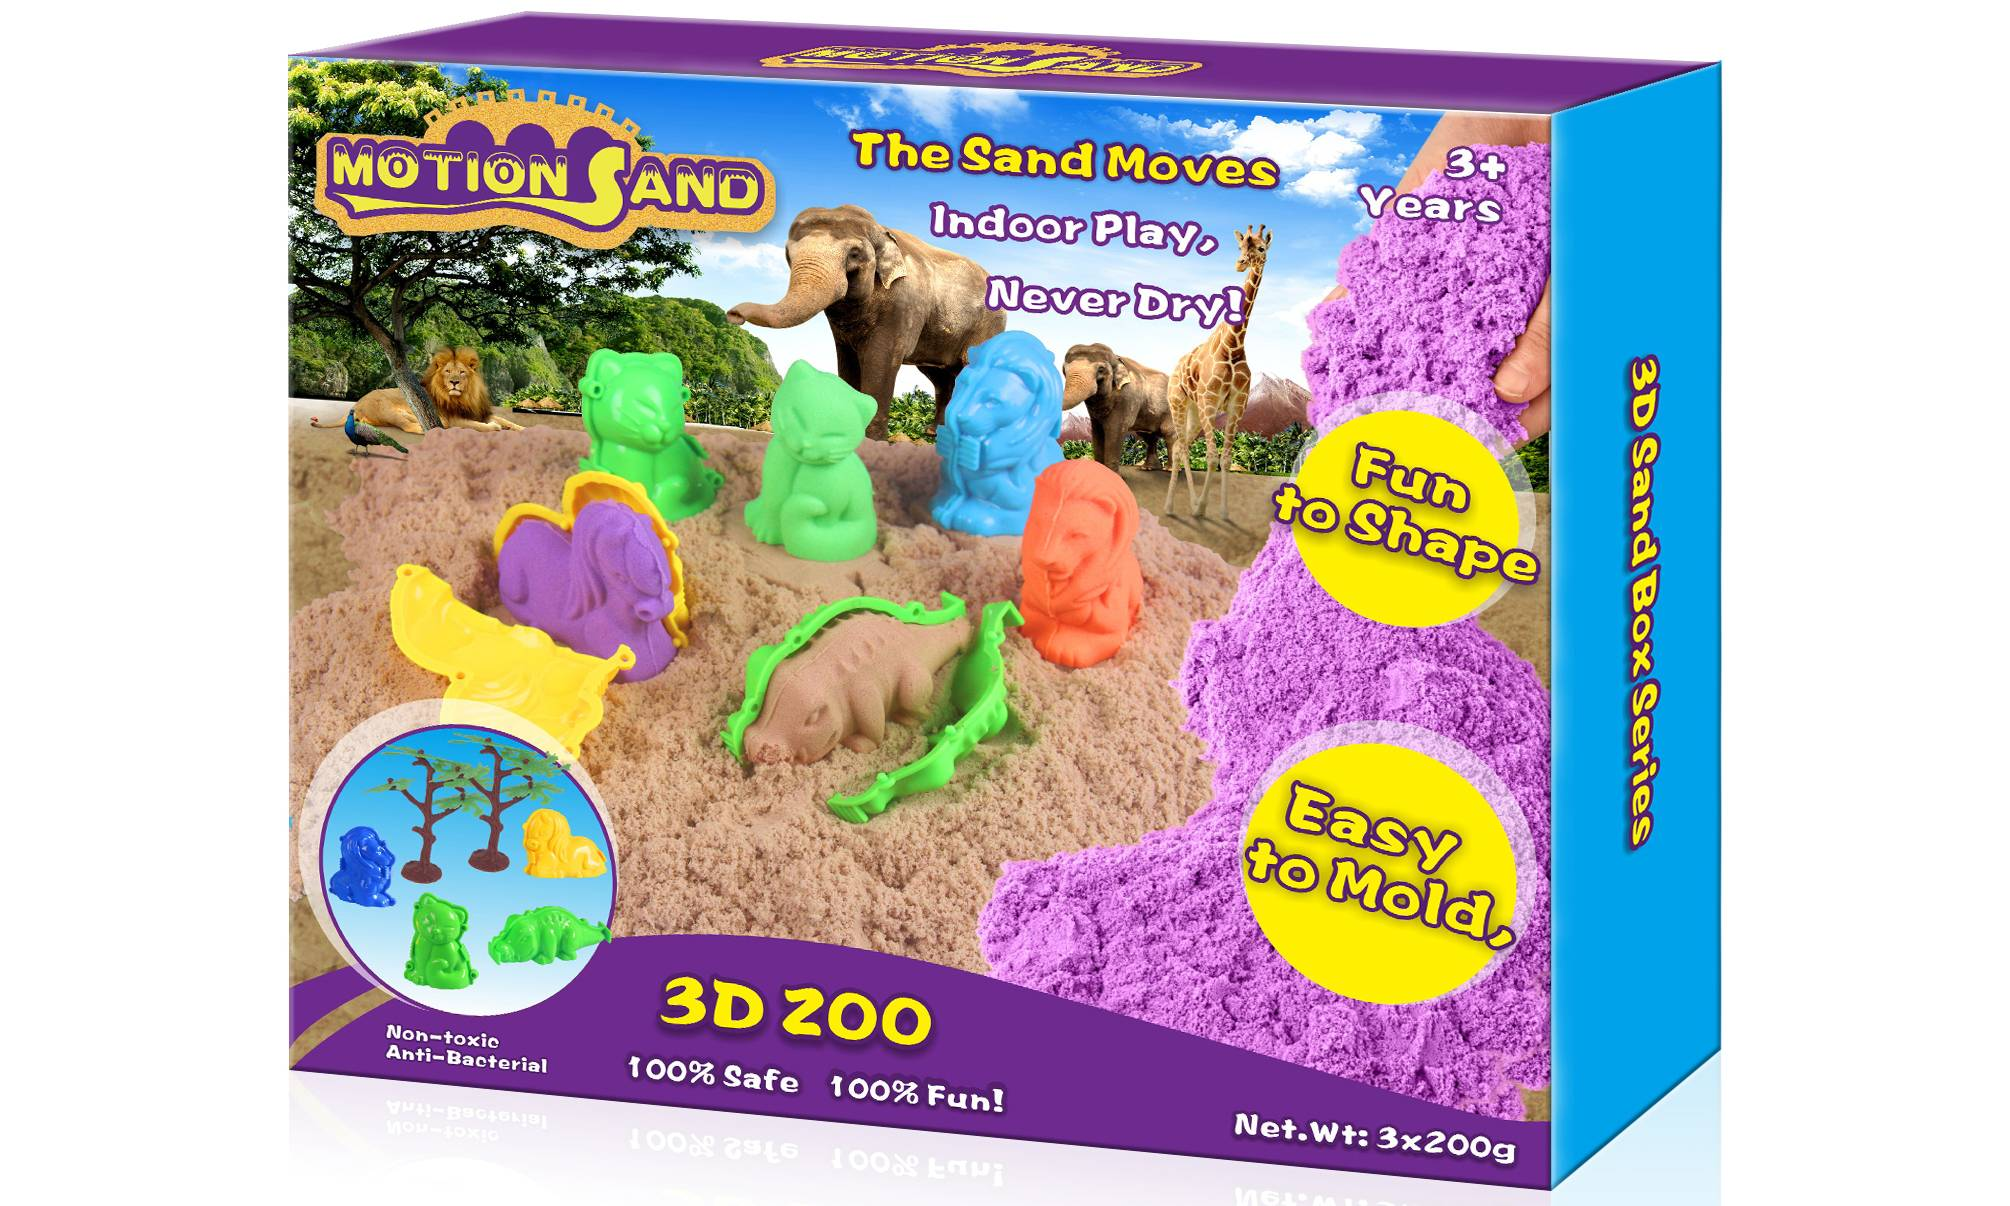 Motion Sand 3D Zoo Animals Playset